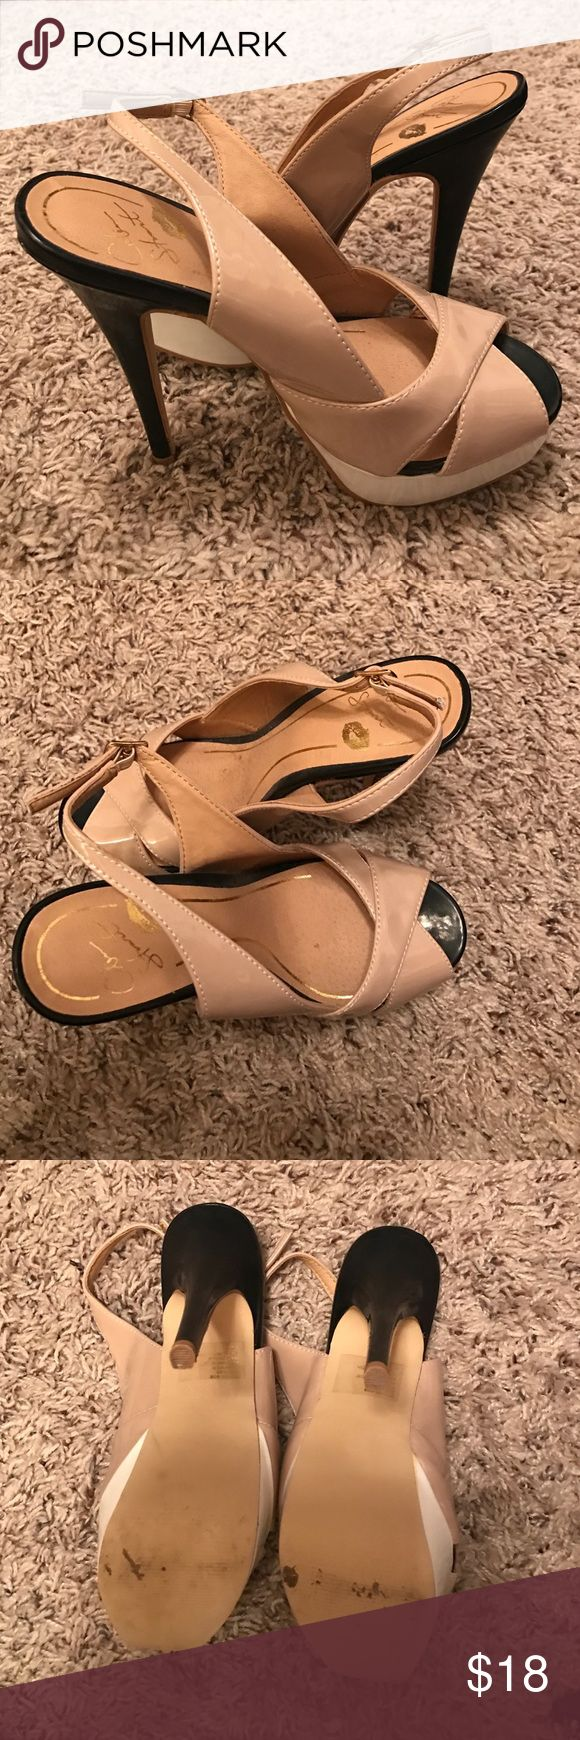 Colin Stuart Peep Toe High Heels Black, white and nude colors. Great condition. Colin Stuart Shoes Heels